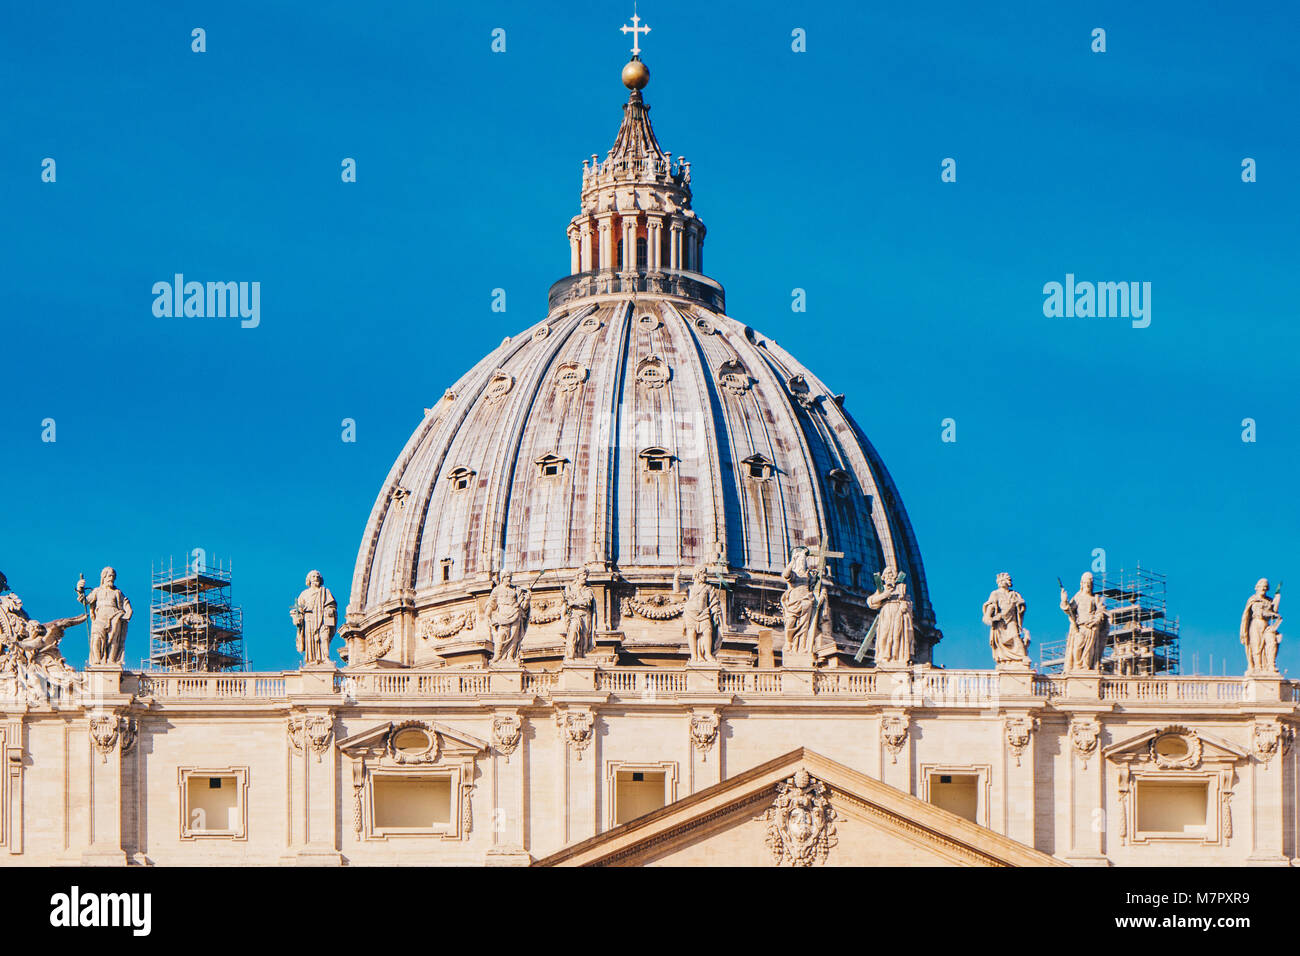 The dome of St. Peter's Basilica in the Vatican City in Rome, Italy - Stock Image